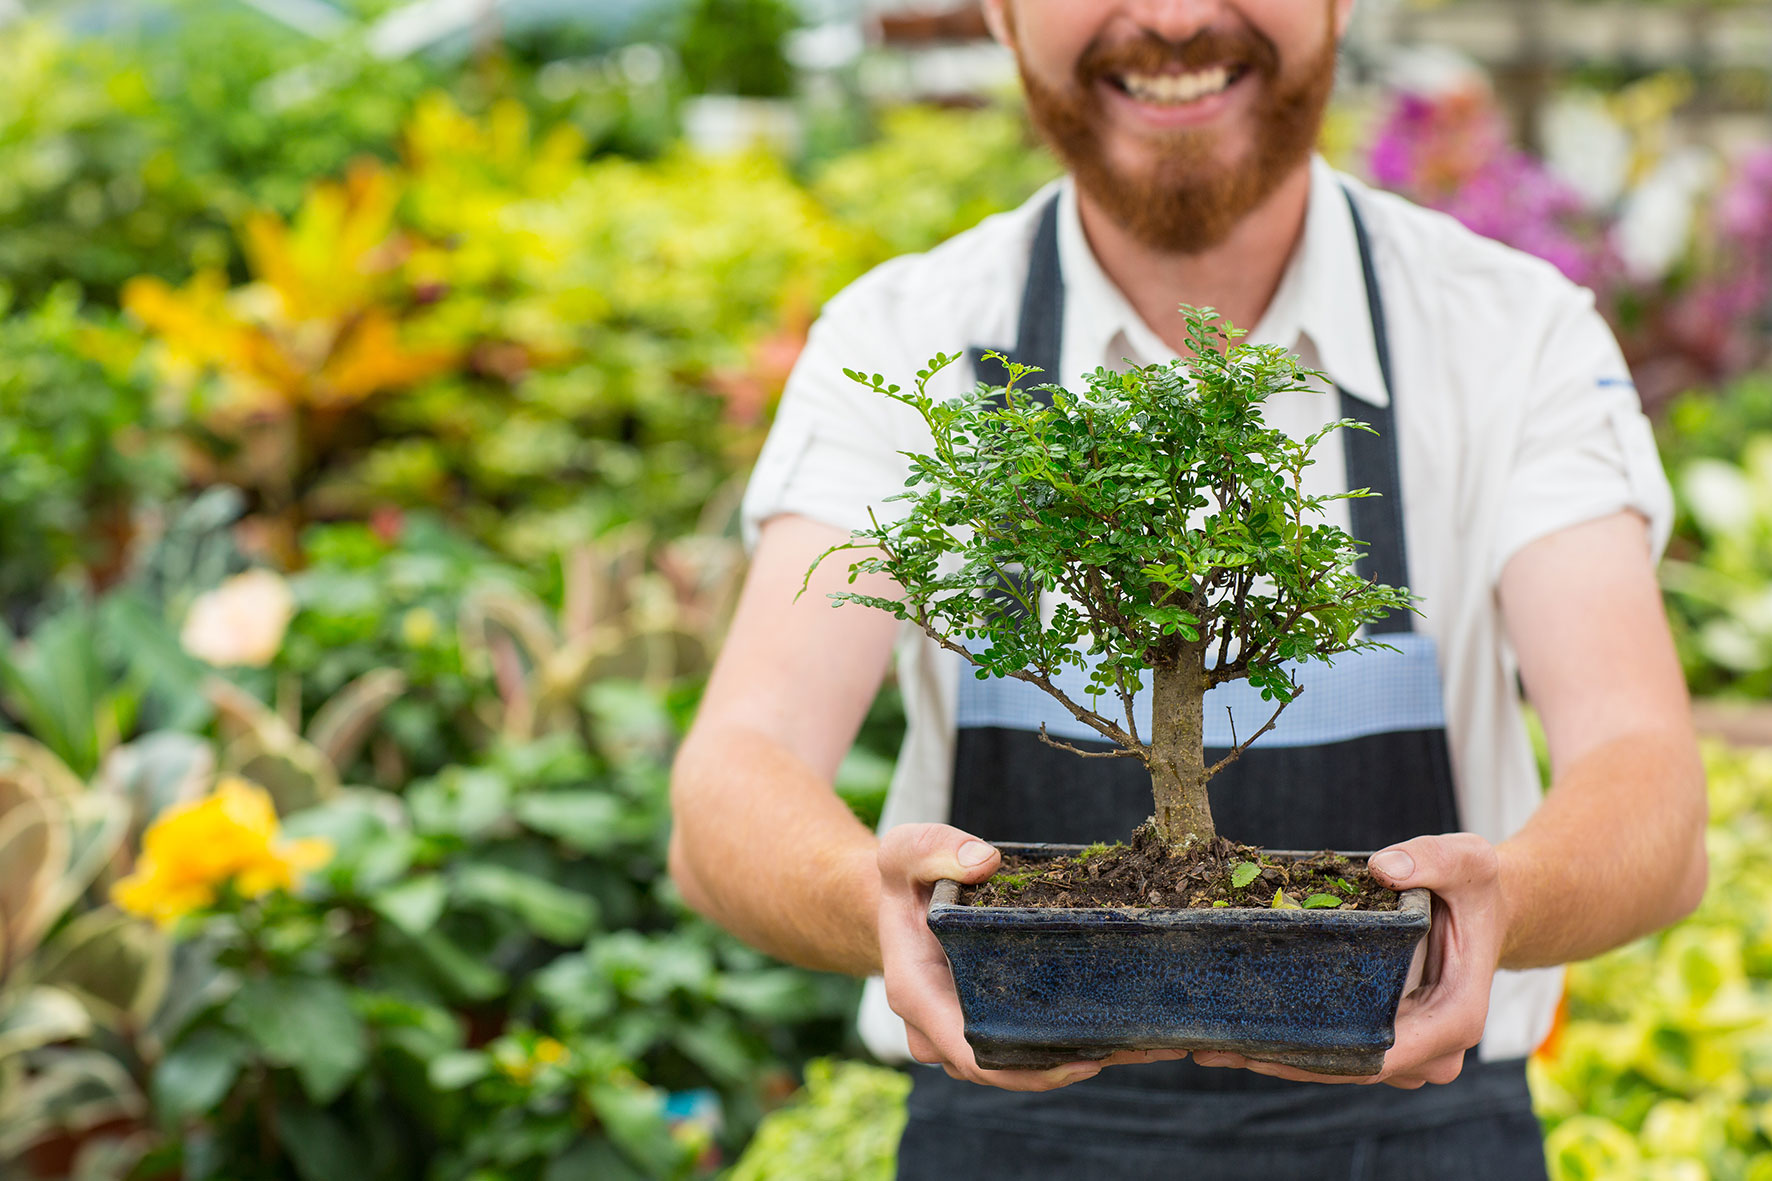 Horticulture Therapy